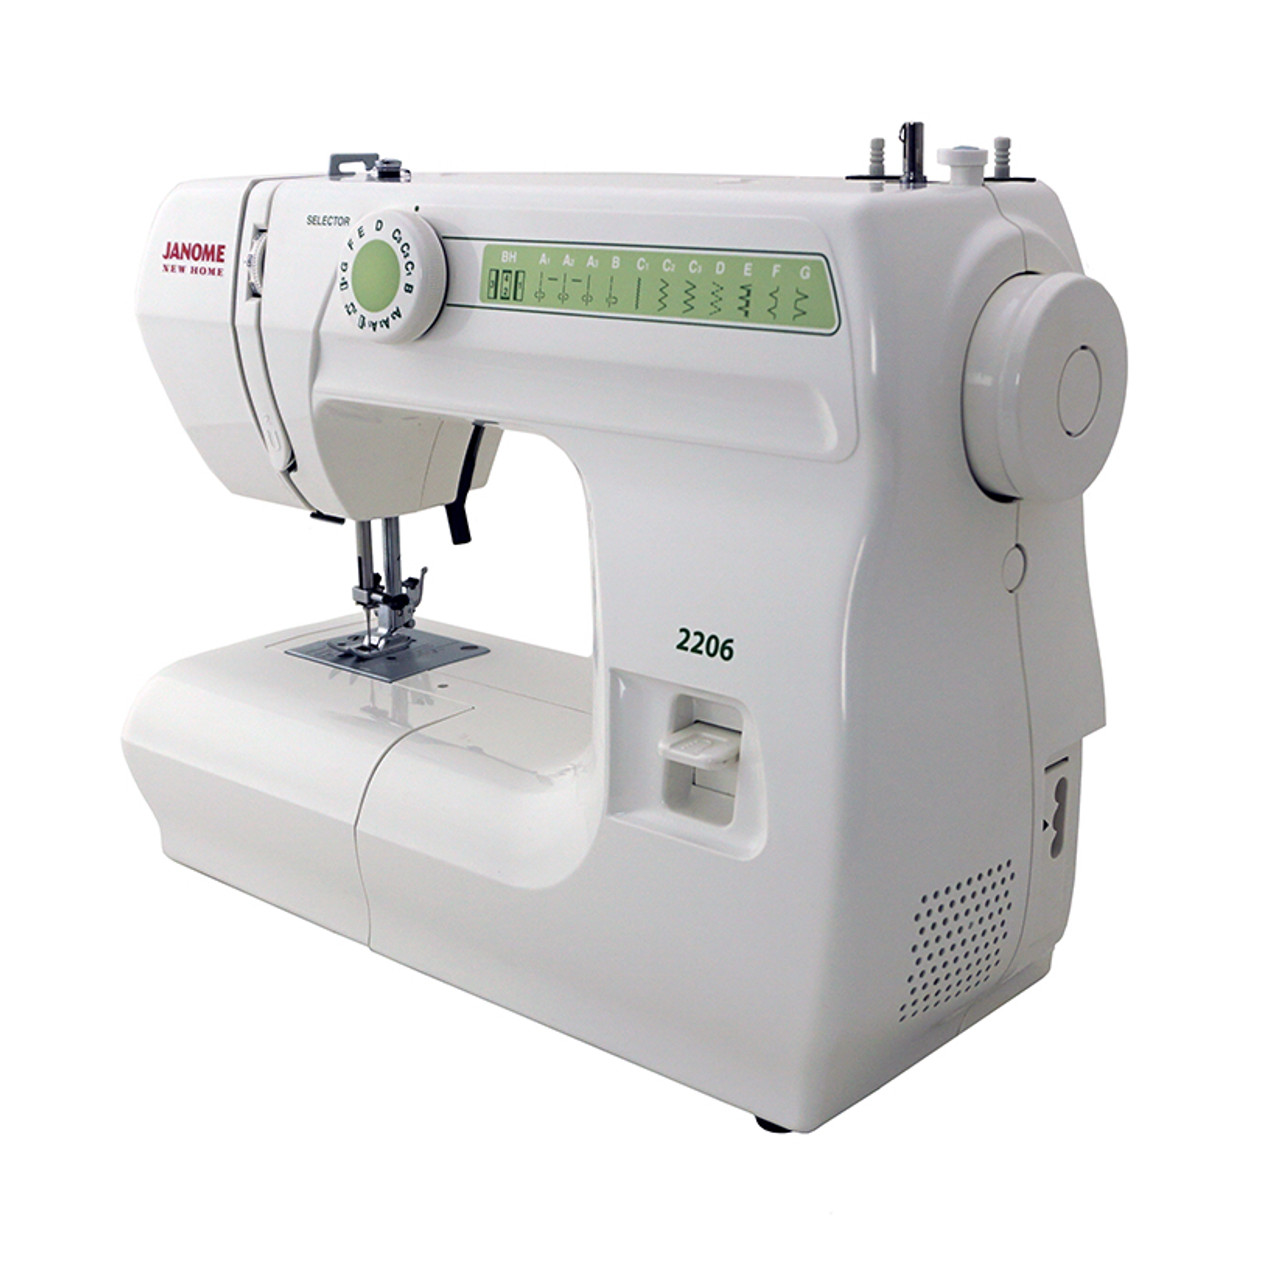 Janome 40 Sewing Machine With Exclusive Bonus Bundle 4040 Mesmerizing Janome 2206 Sewing Machine Reviews